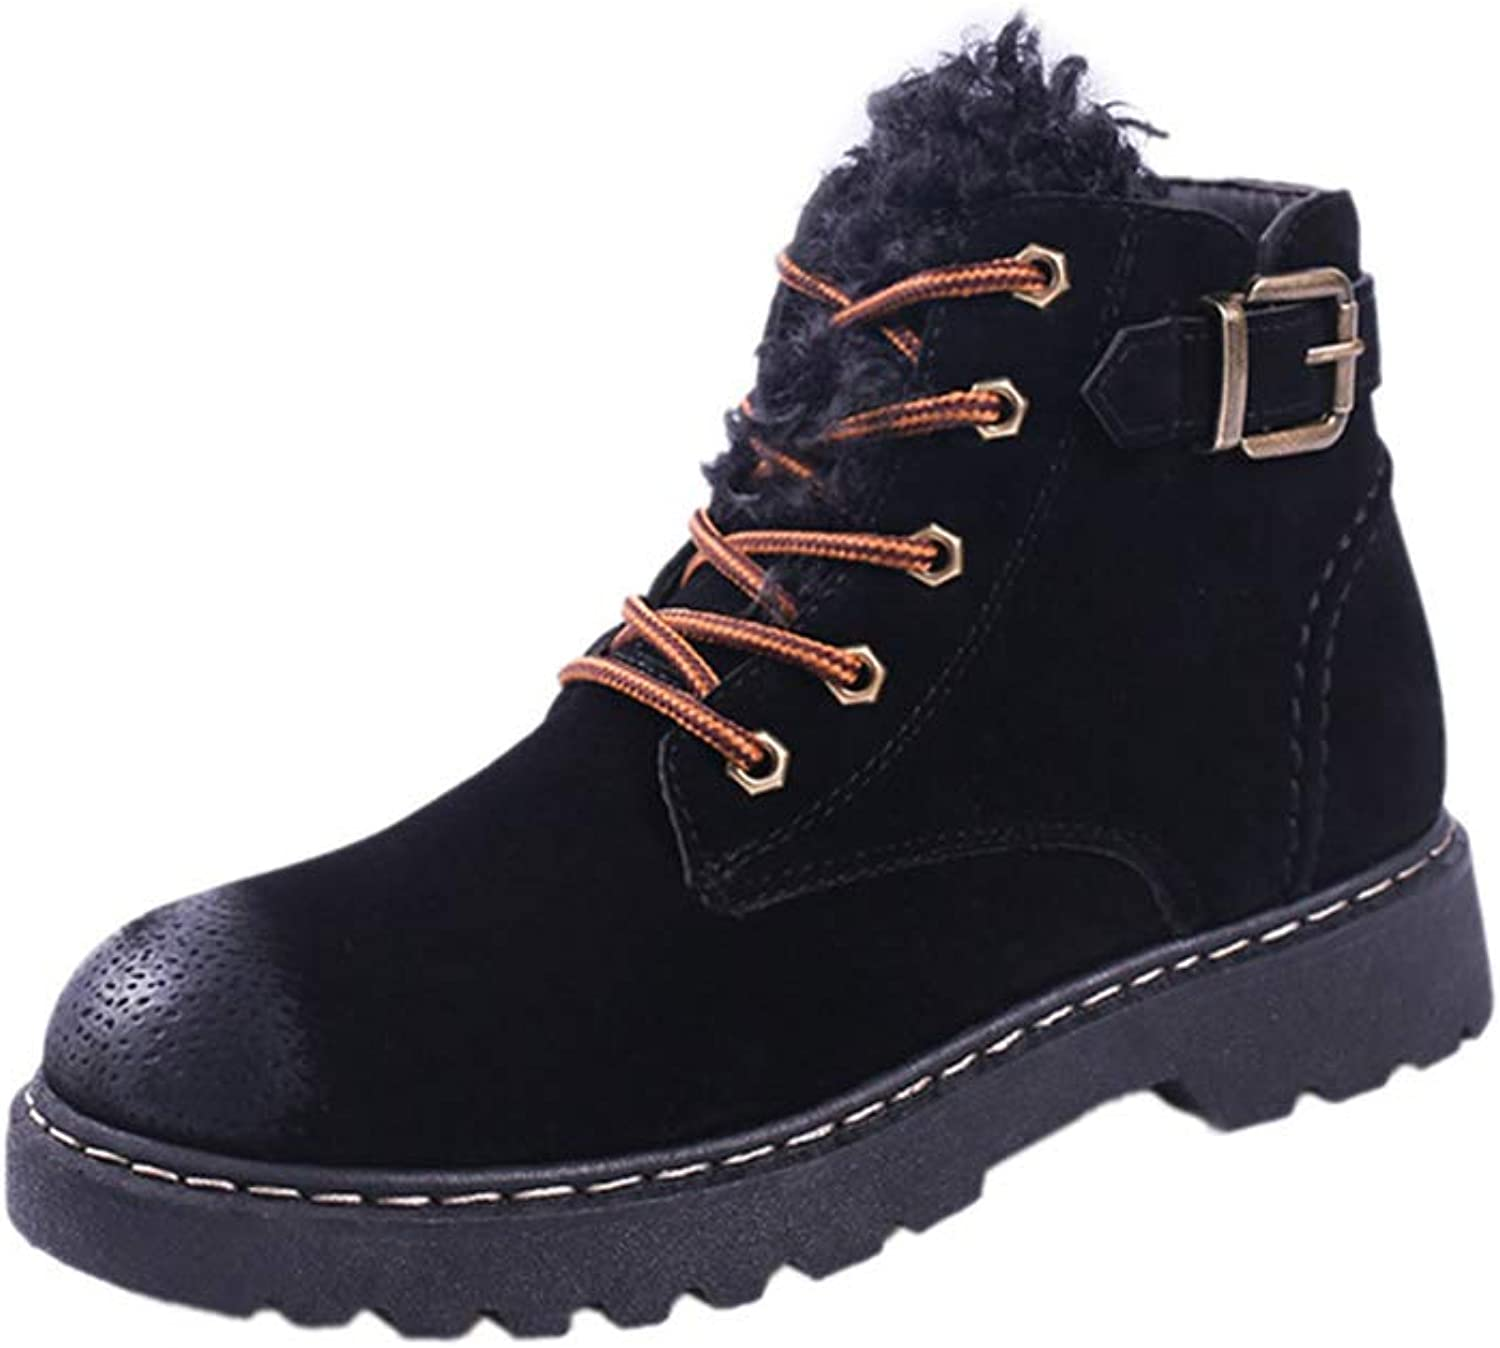 A-LING Women's Casual Boot Lace Up Round Head shoes Fashion Martin Boots